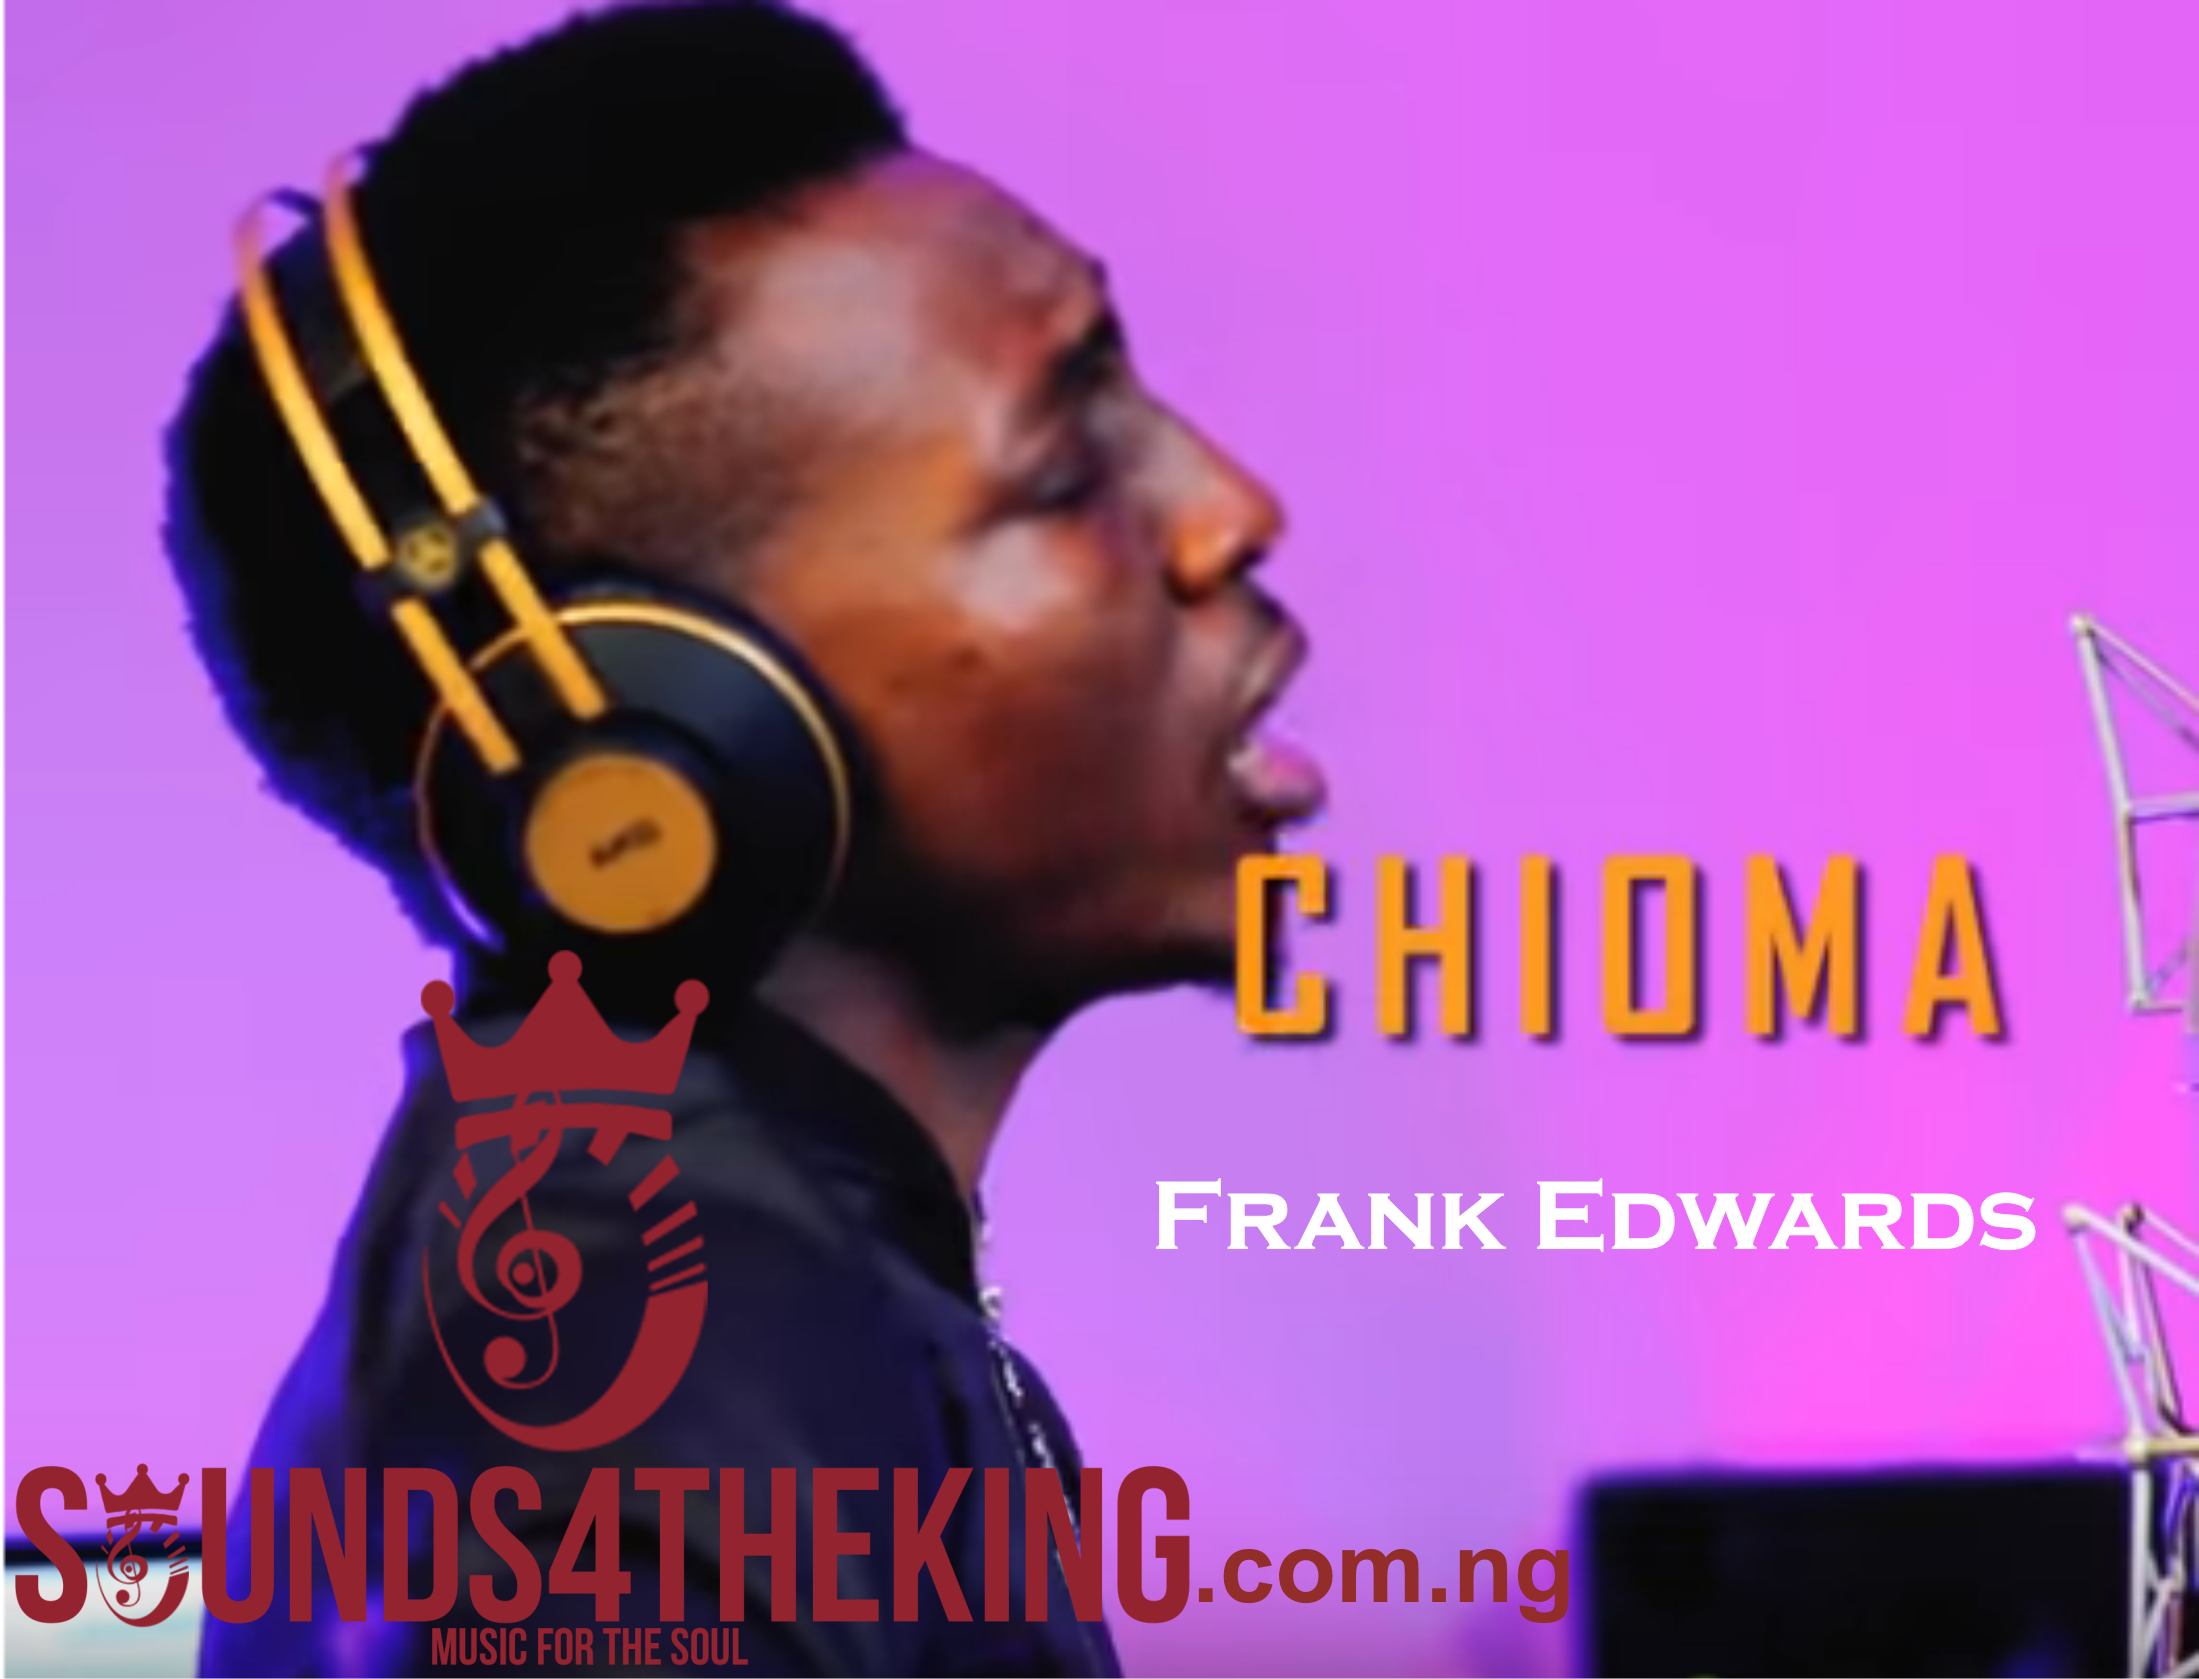 Download Frank Edwards Chioma Free MP3